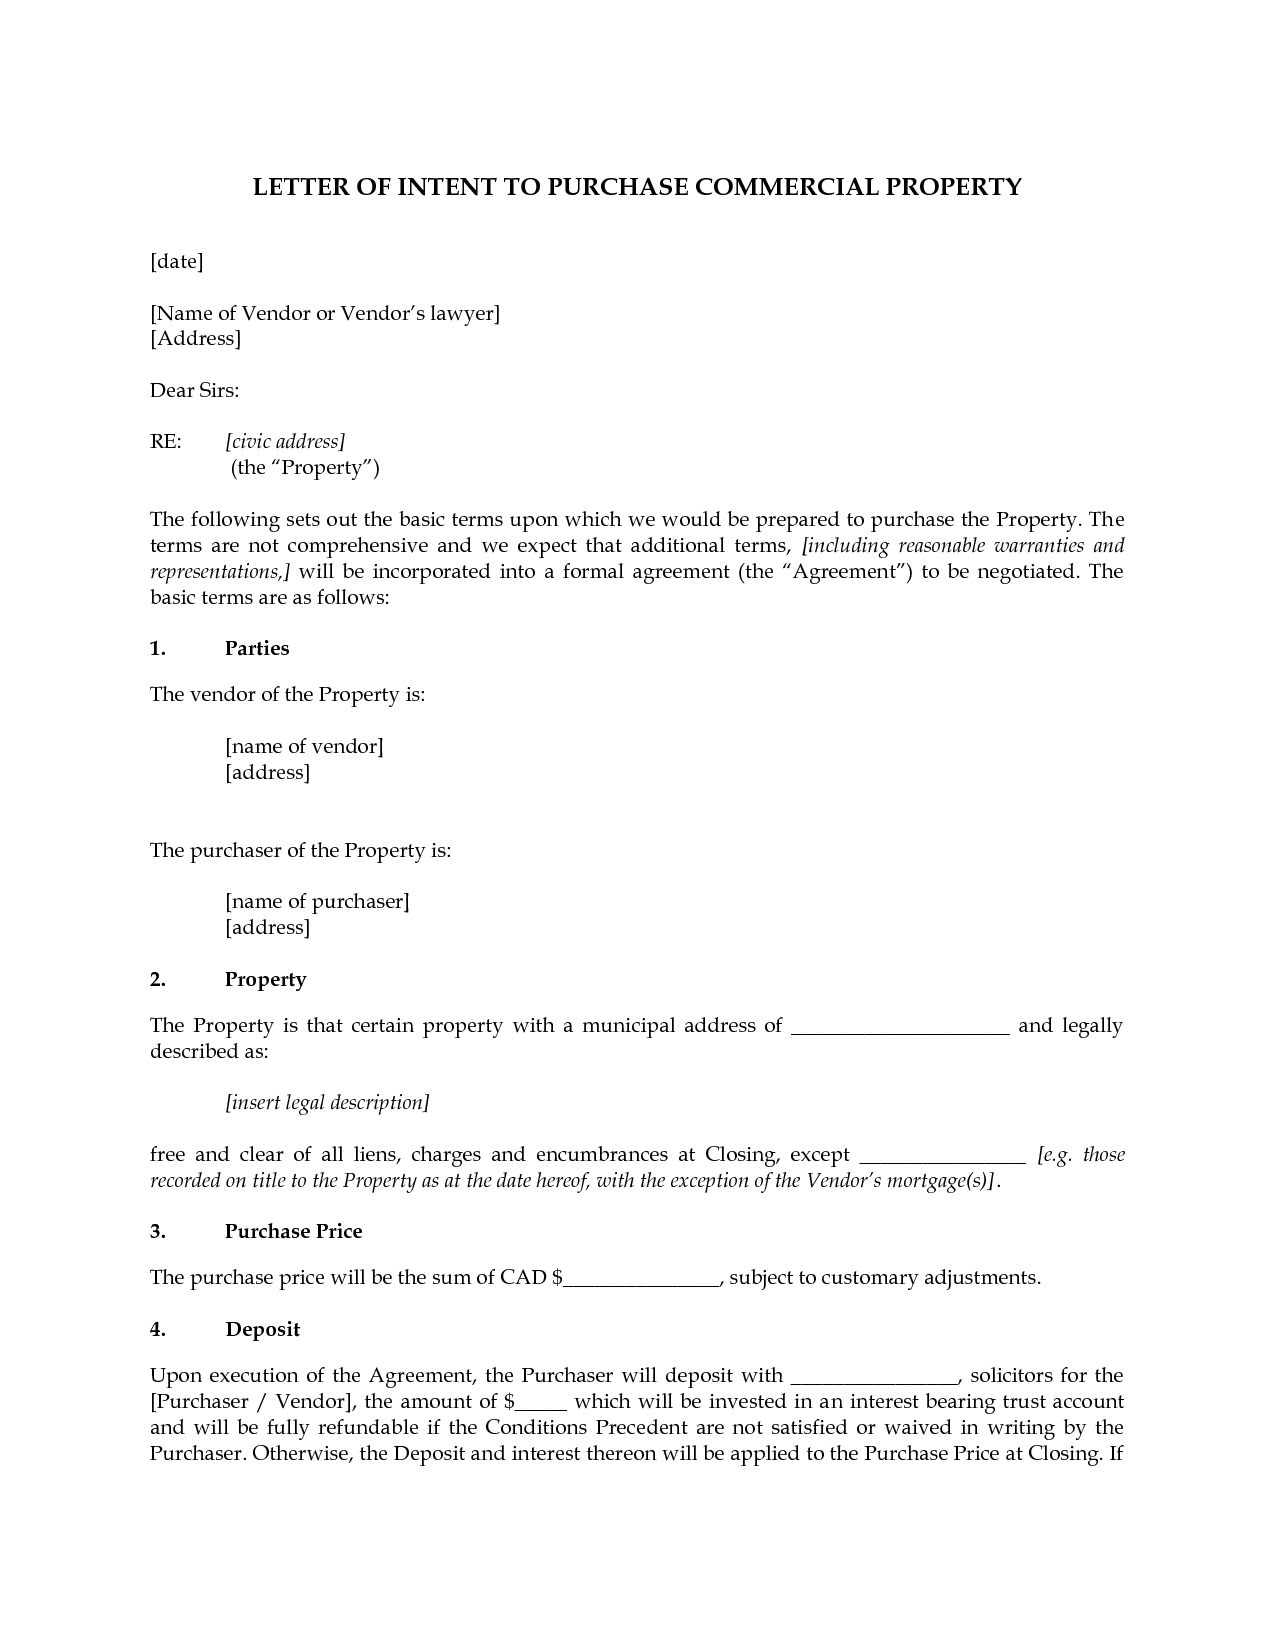 Commercial Real Estate Letter Of Intent to Purchase Template - Mercial Real Estate Lease Letter Intent Template Purchase